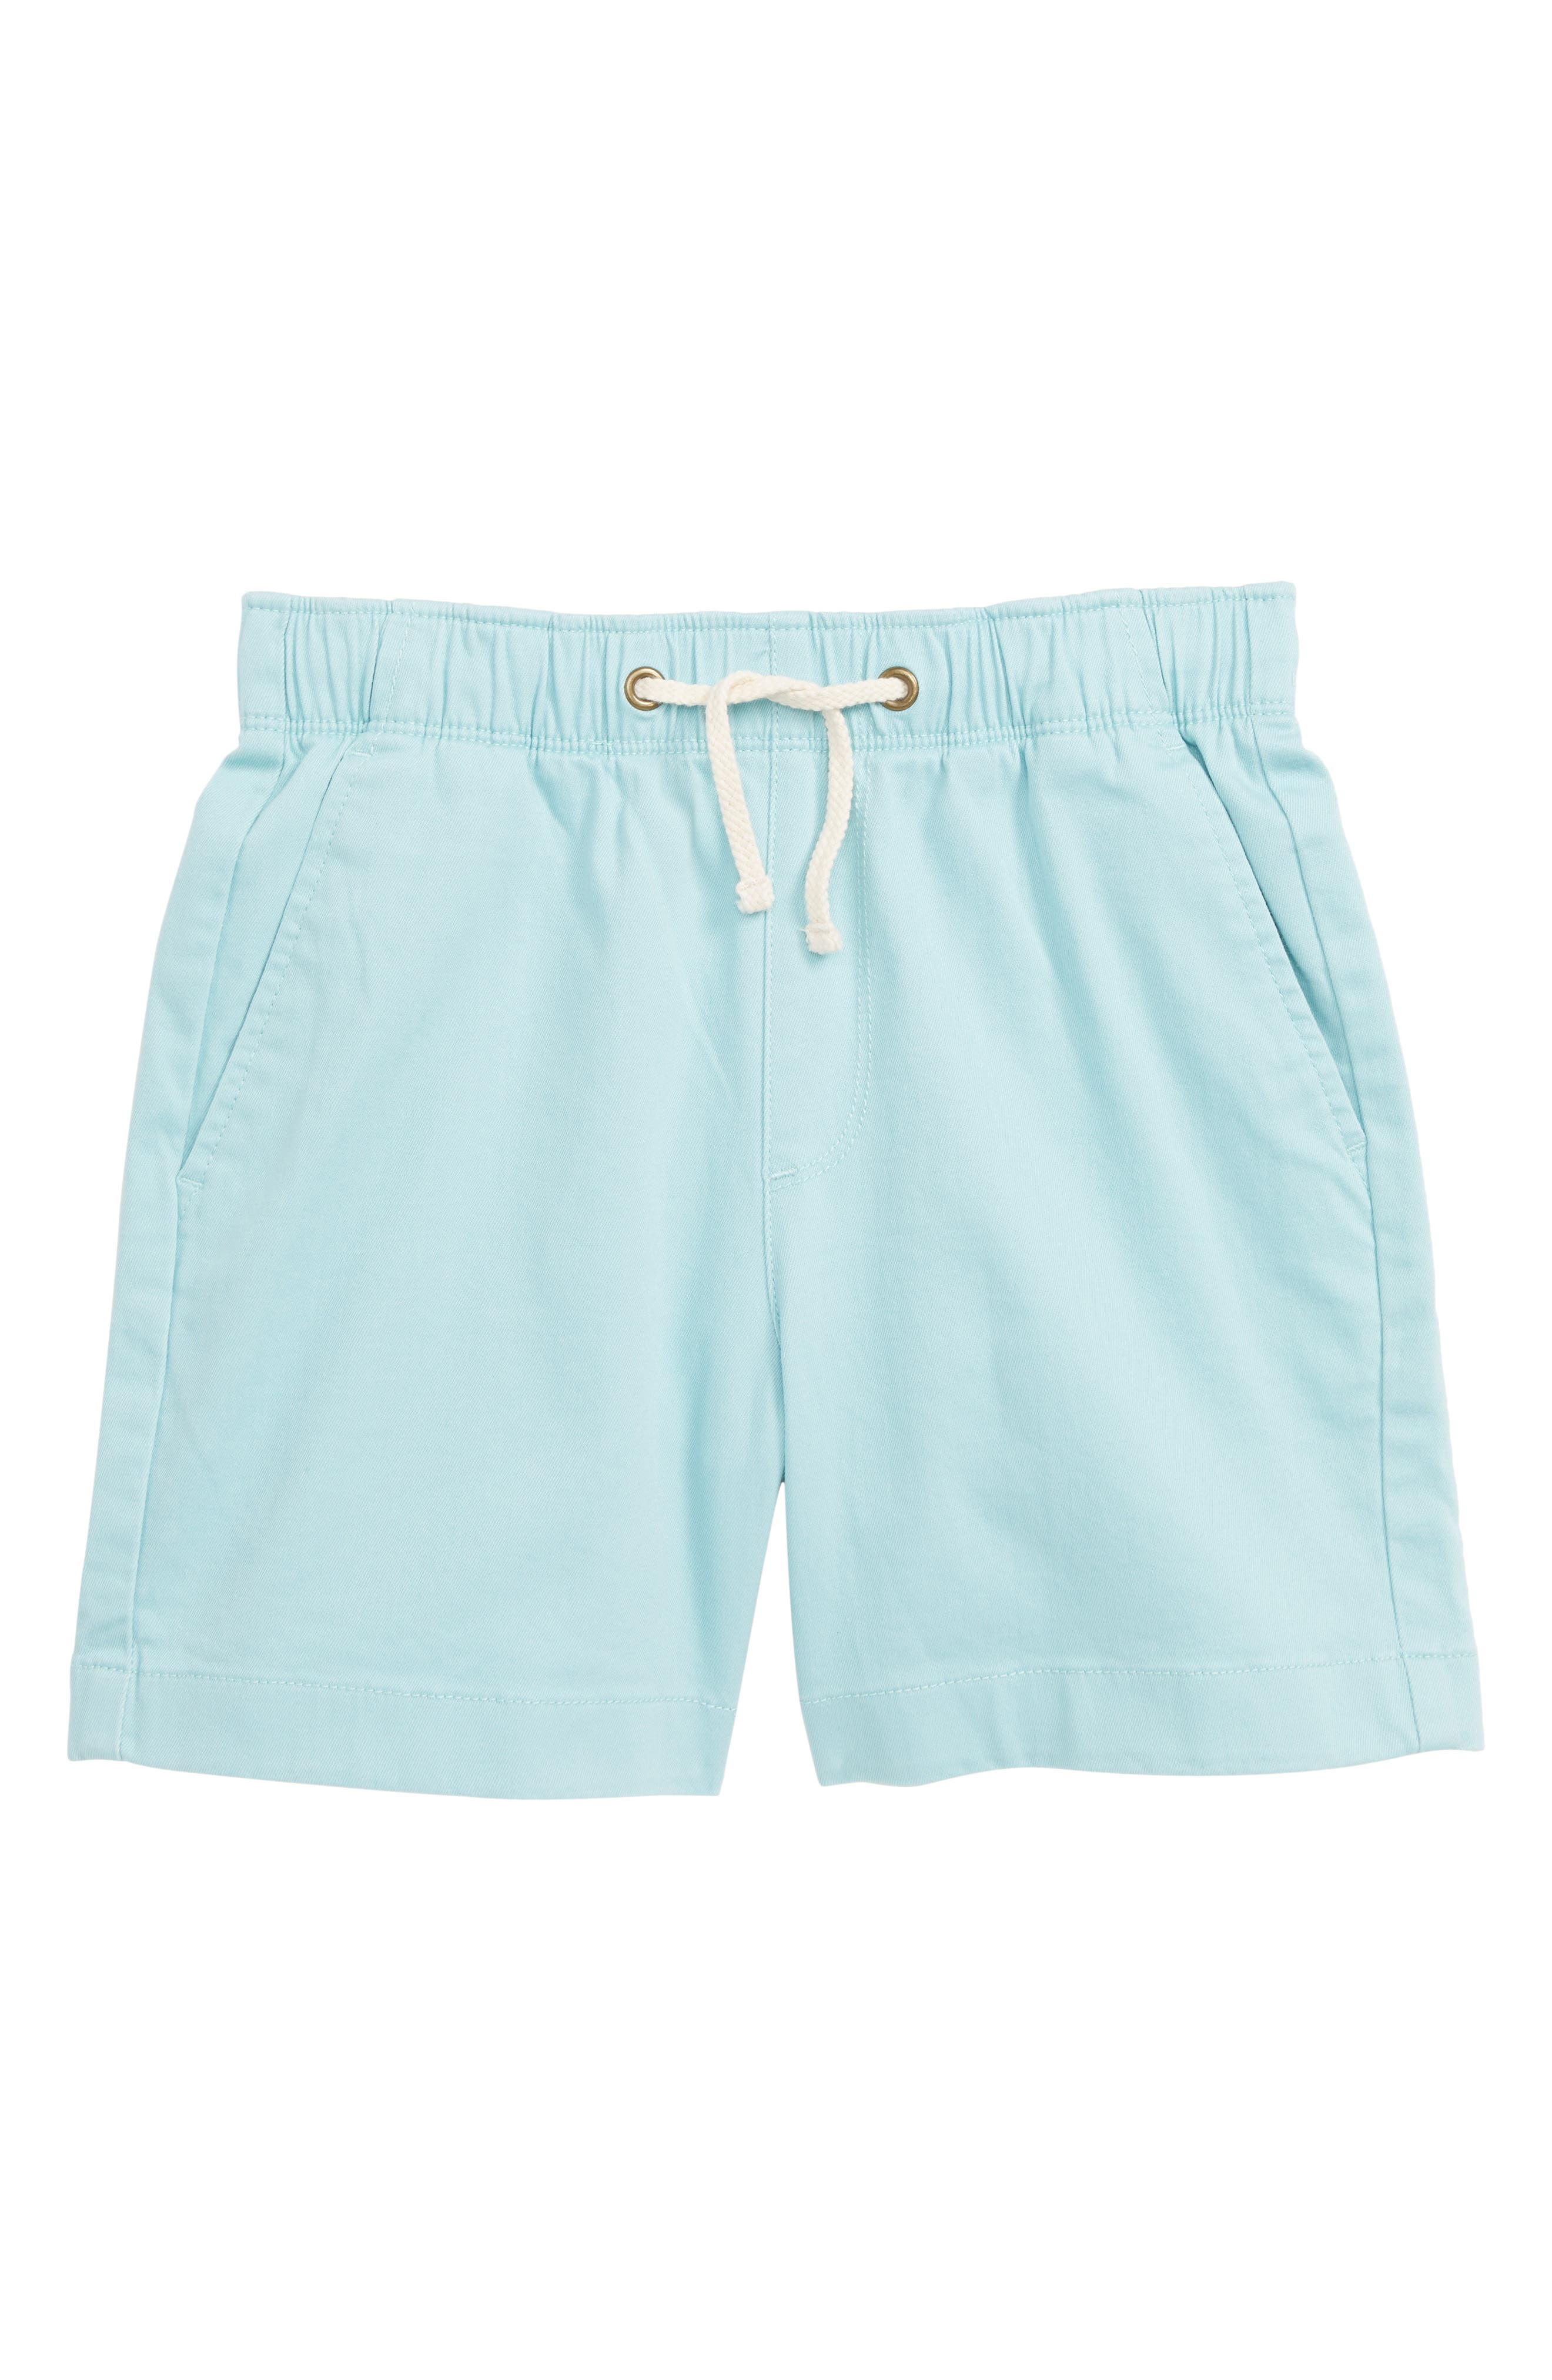 CREWCUTS BY J.CREW Stretch Chino Dock Shorts, Main, color, DEEP SPEARMINT